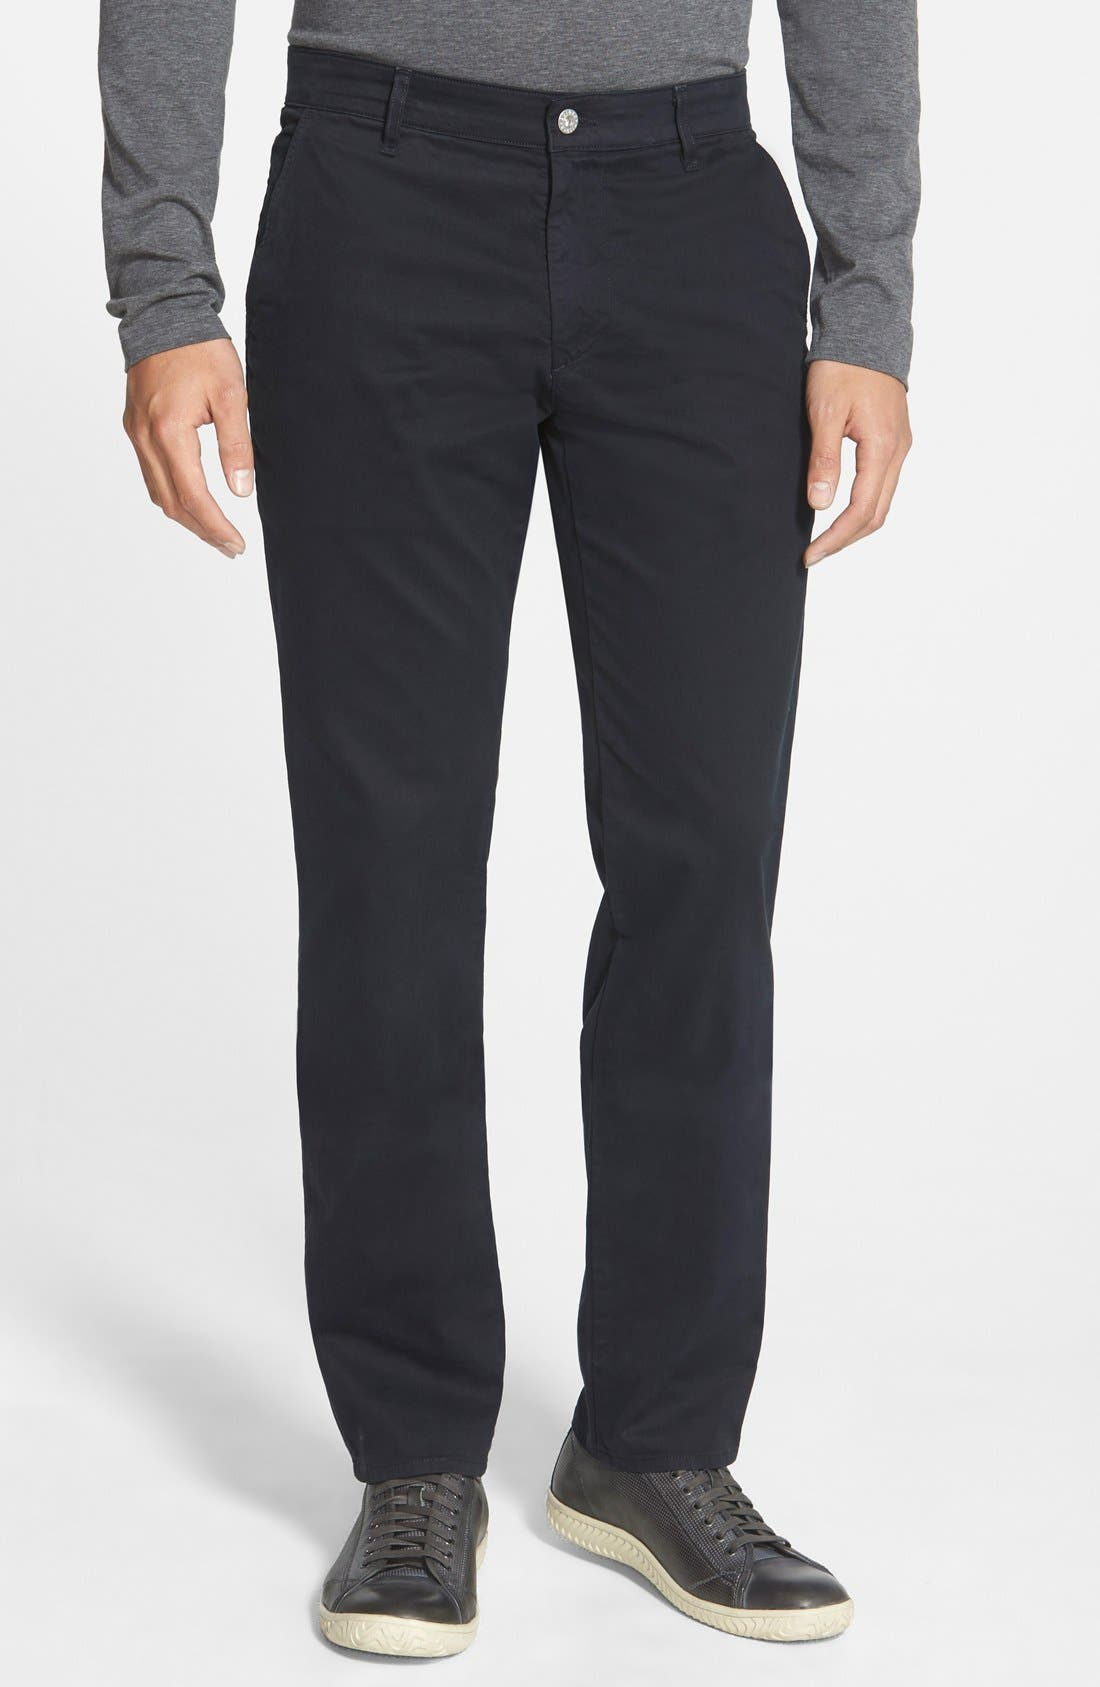 'The Lux' Tailored Straight Leg Chinos,                             Main thumbnail 2, color,